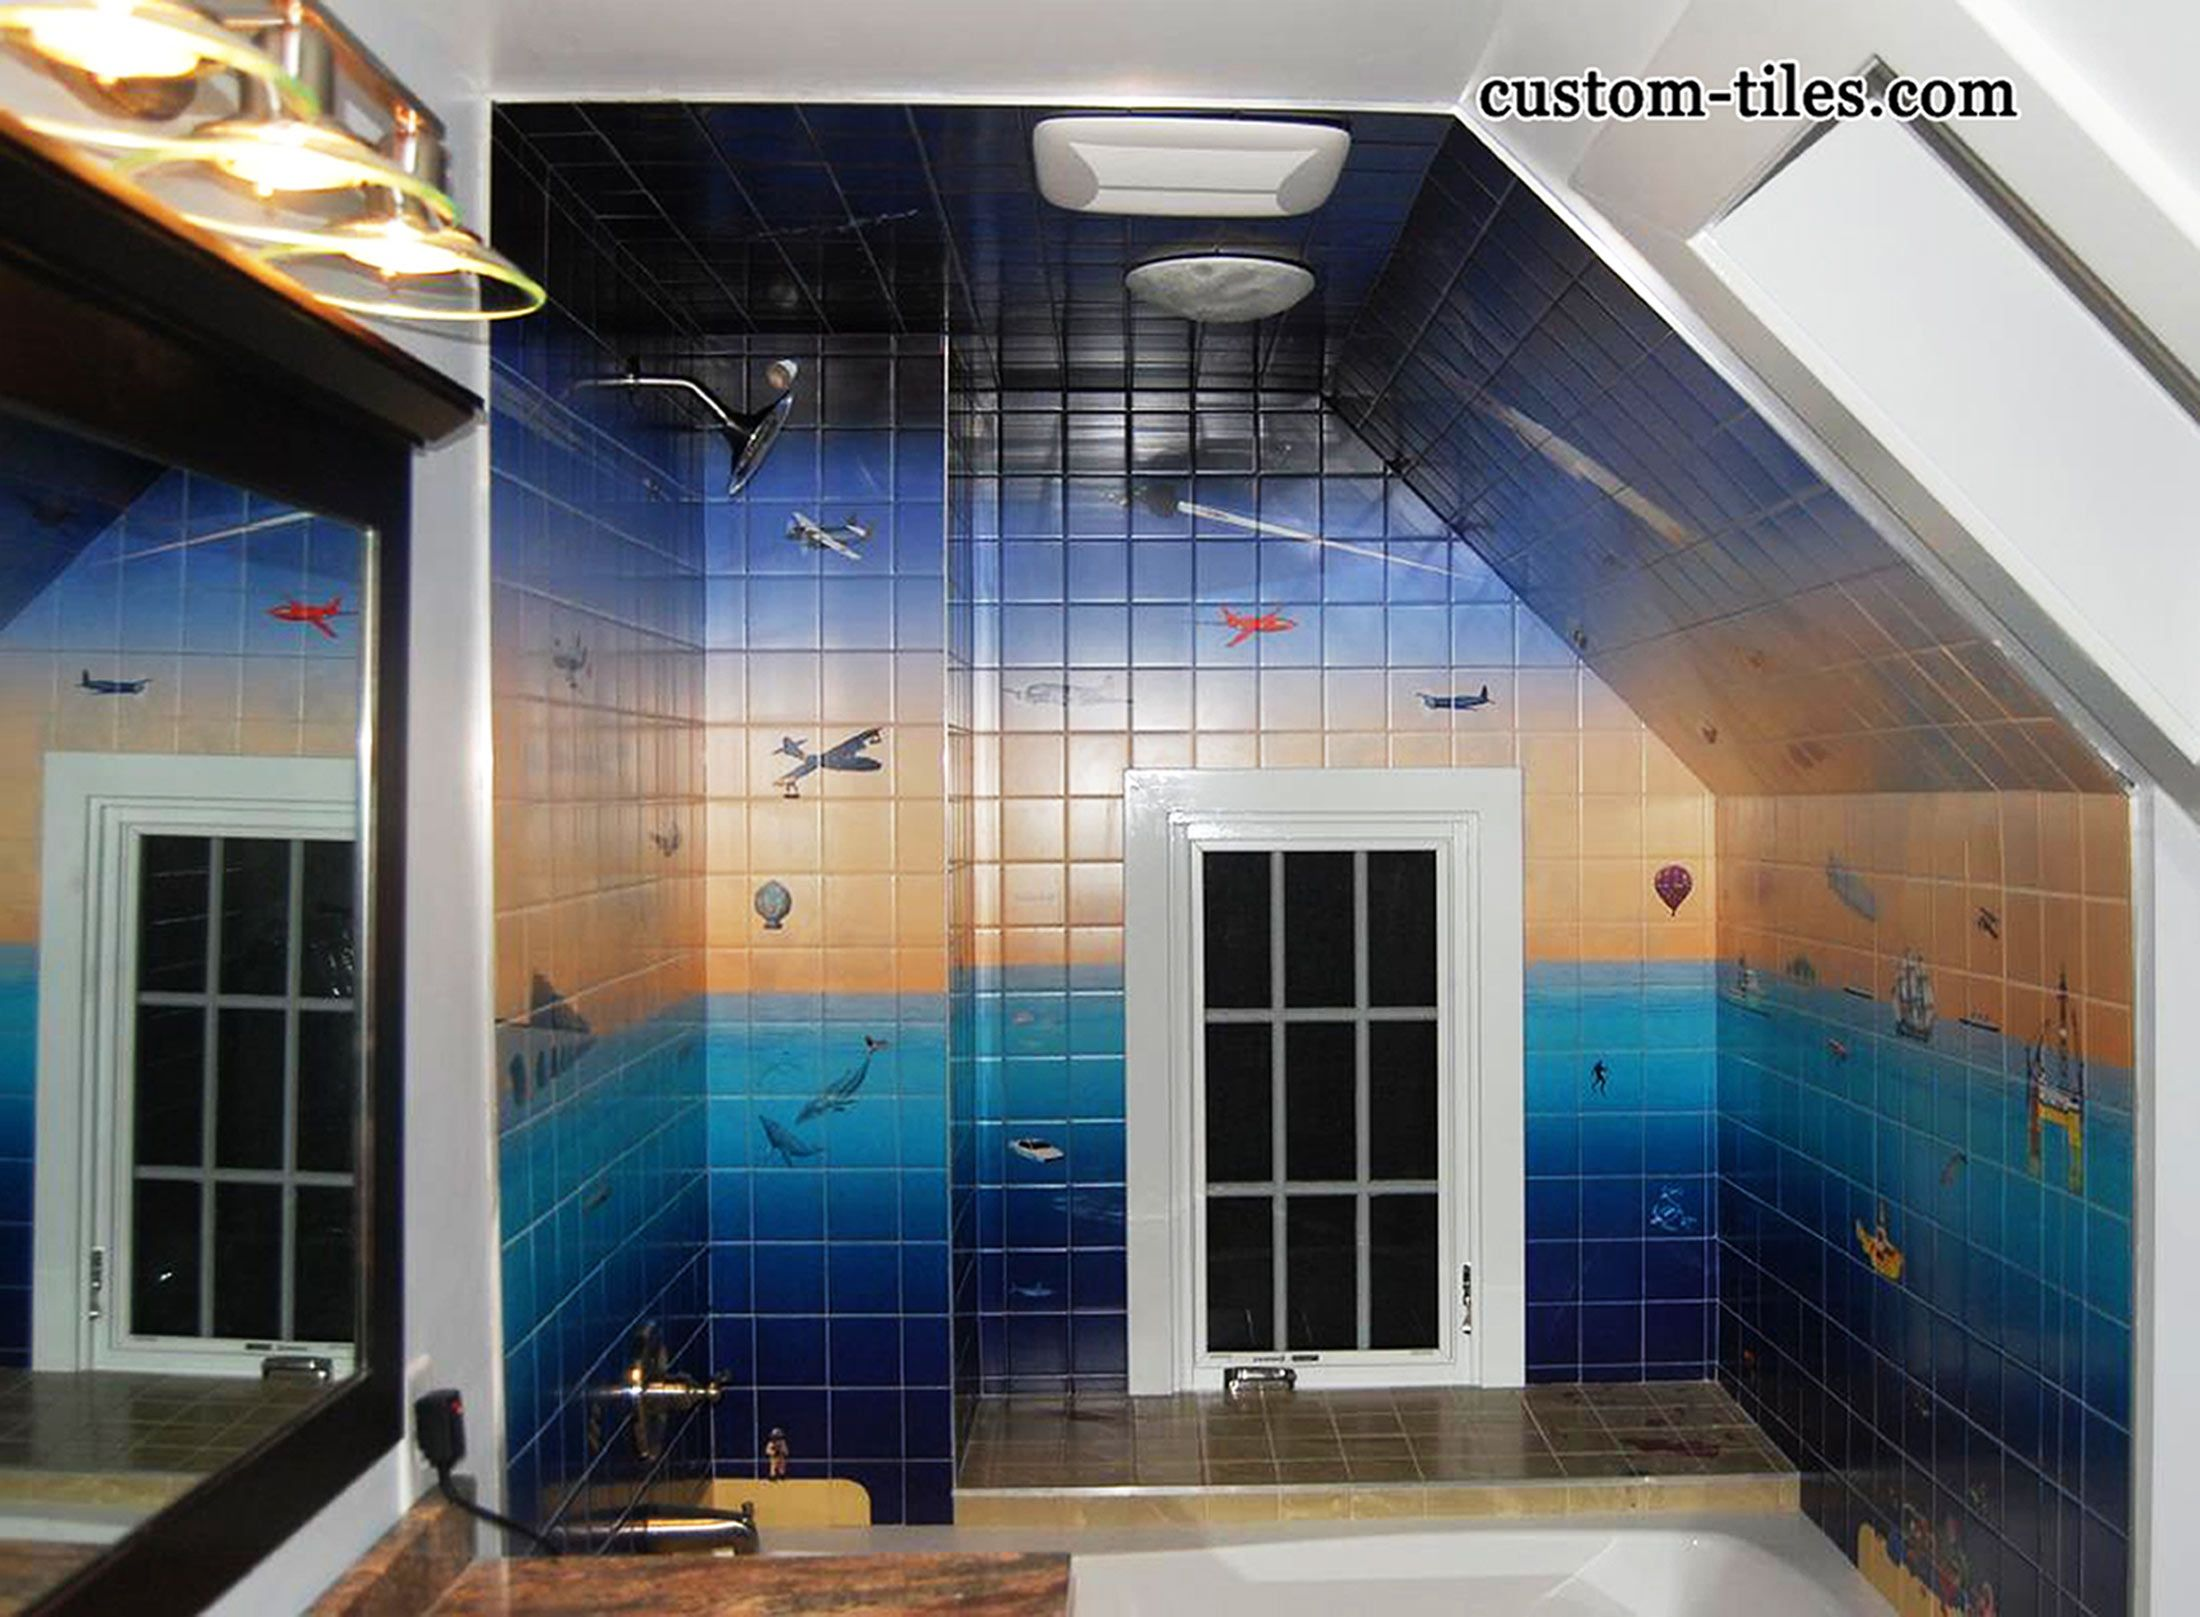 CUSTOM TILE MURAL IN BATHROOM completely surrounds bath and shower ...